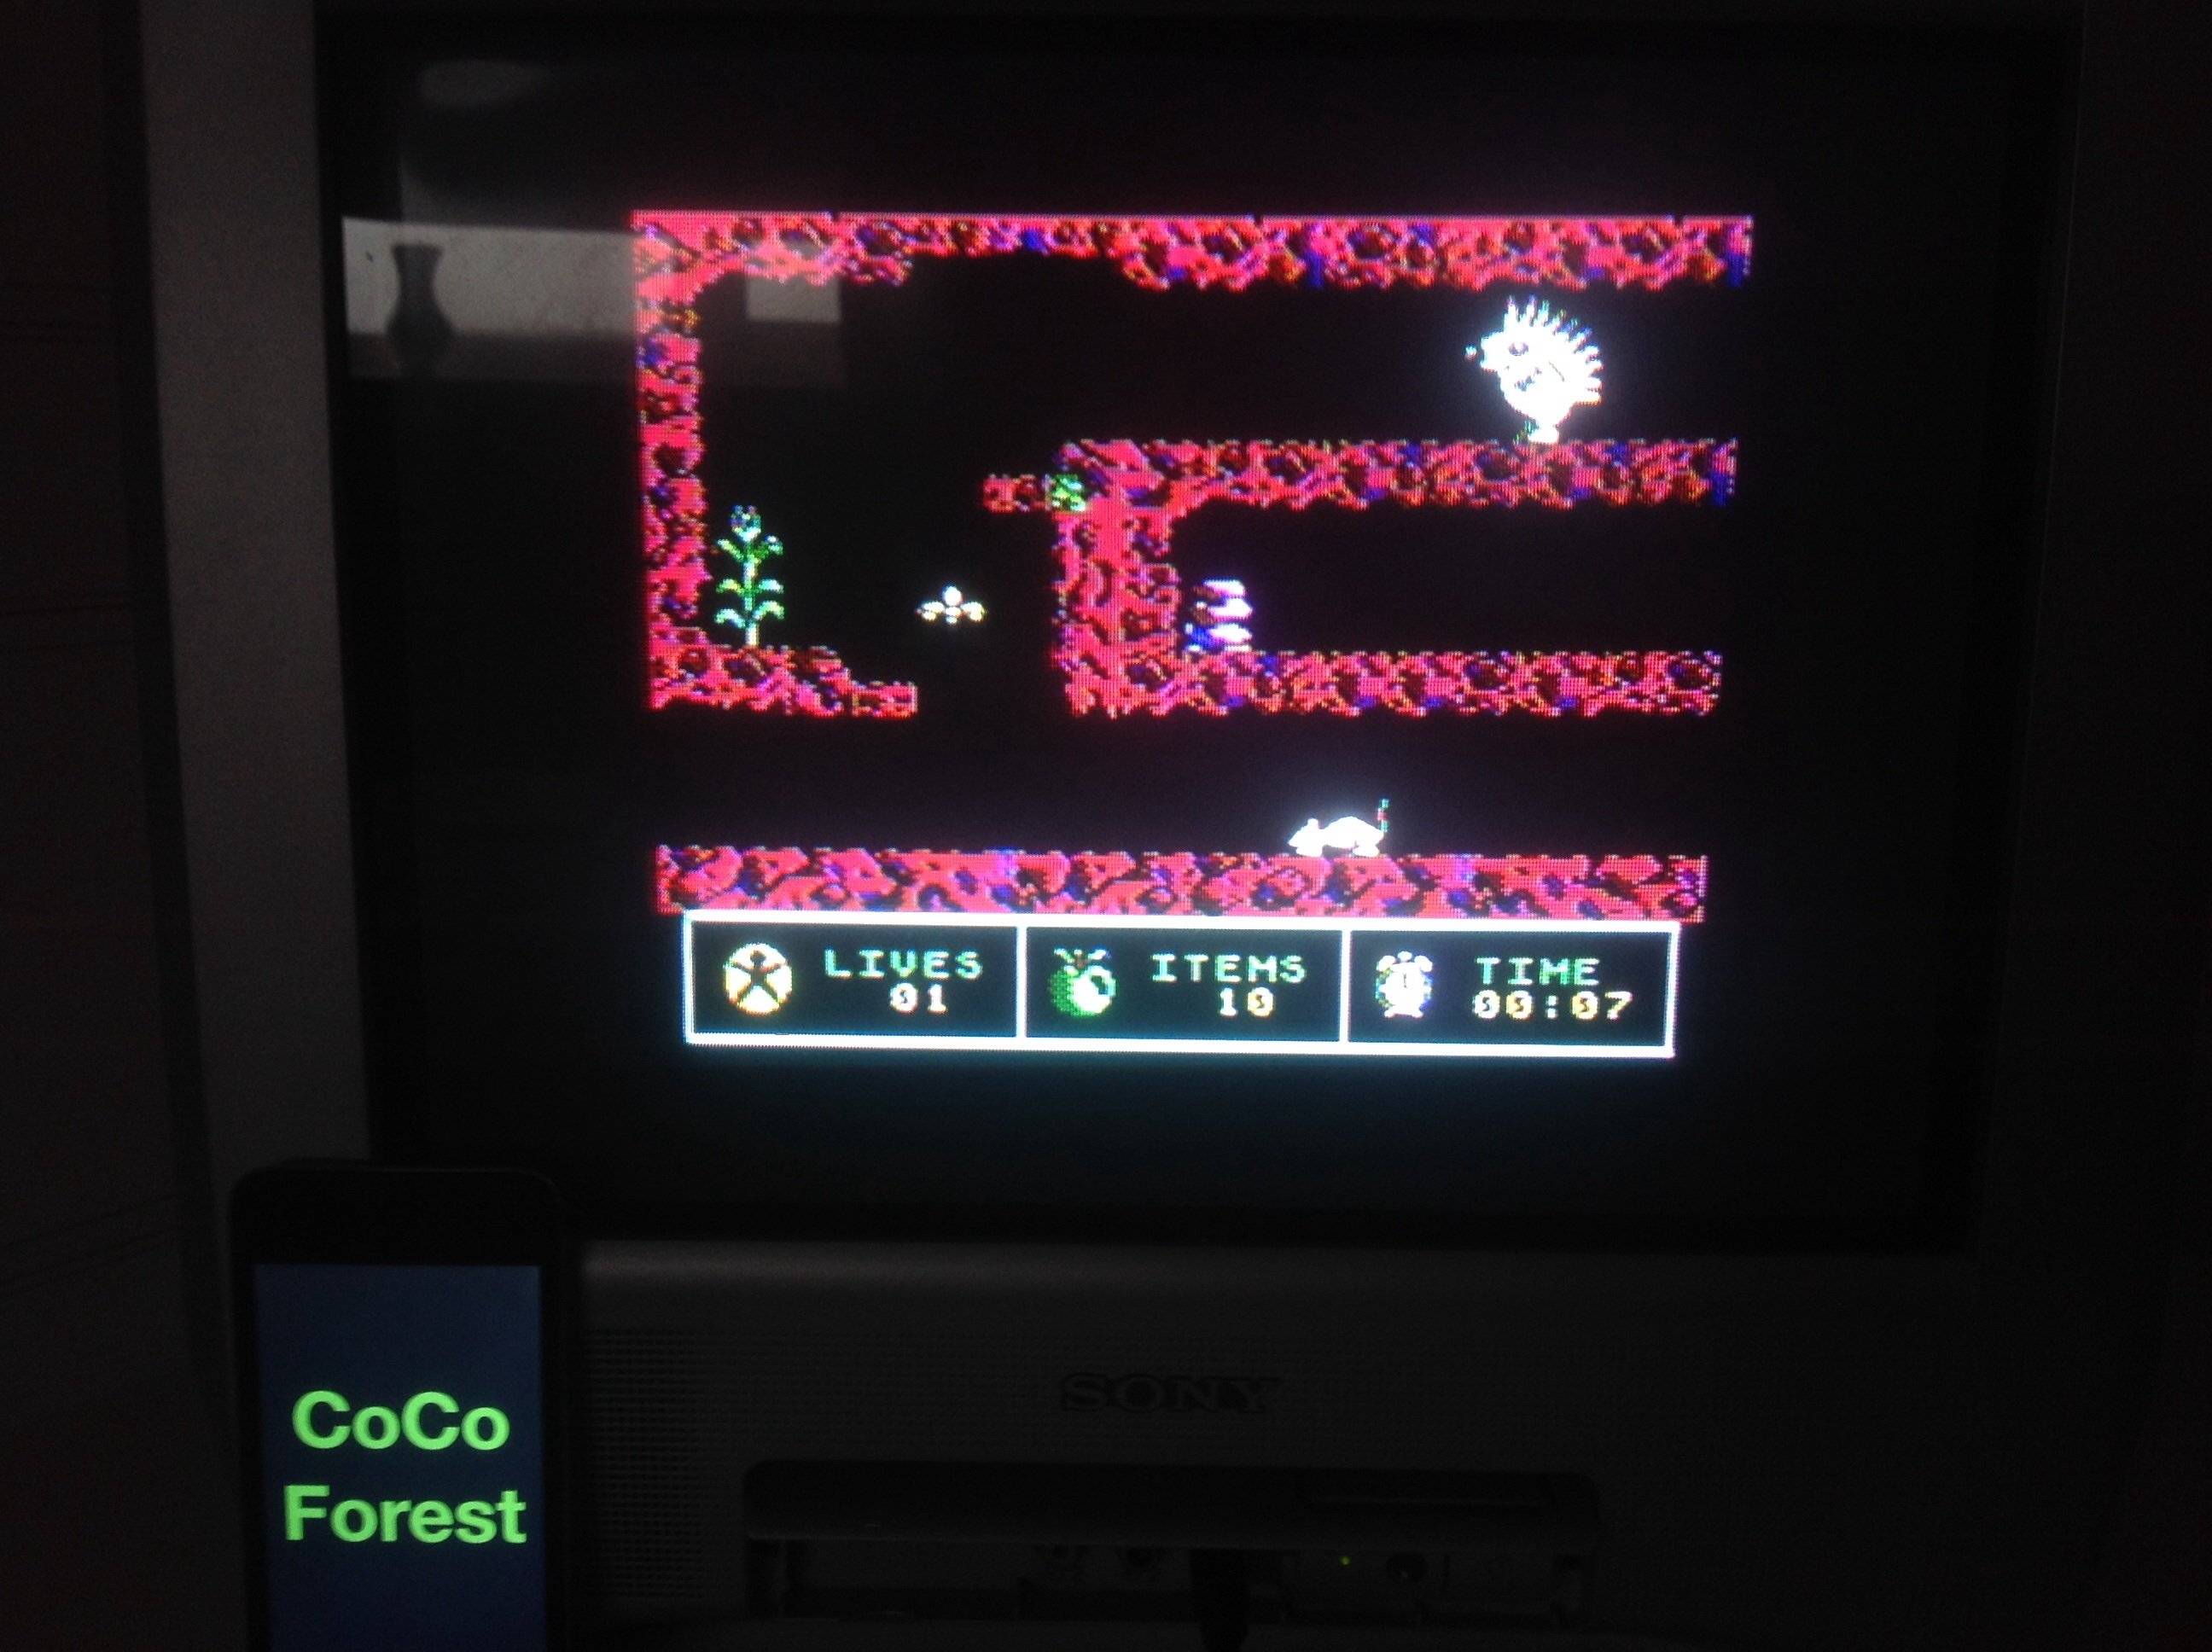 CoCoForest: Spiky Harold (Commodore 64) 10 points on 2014-09-18 02:56:21